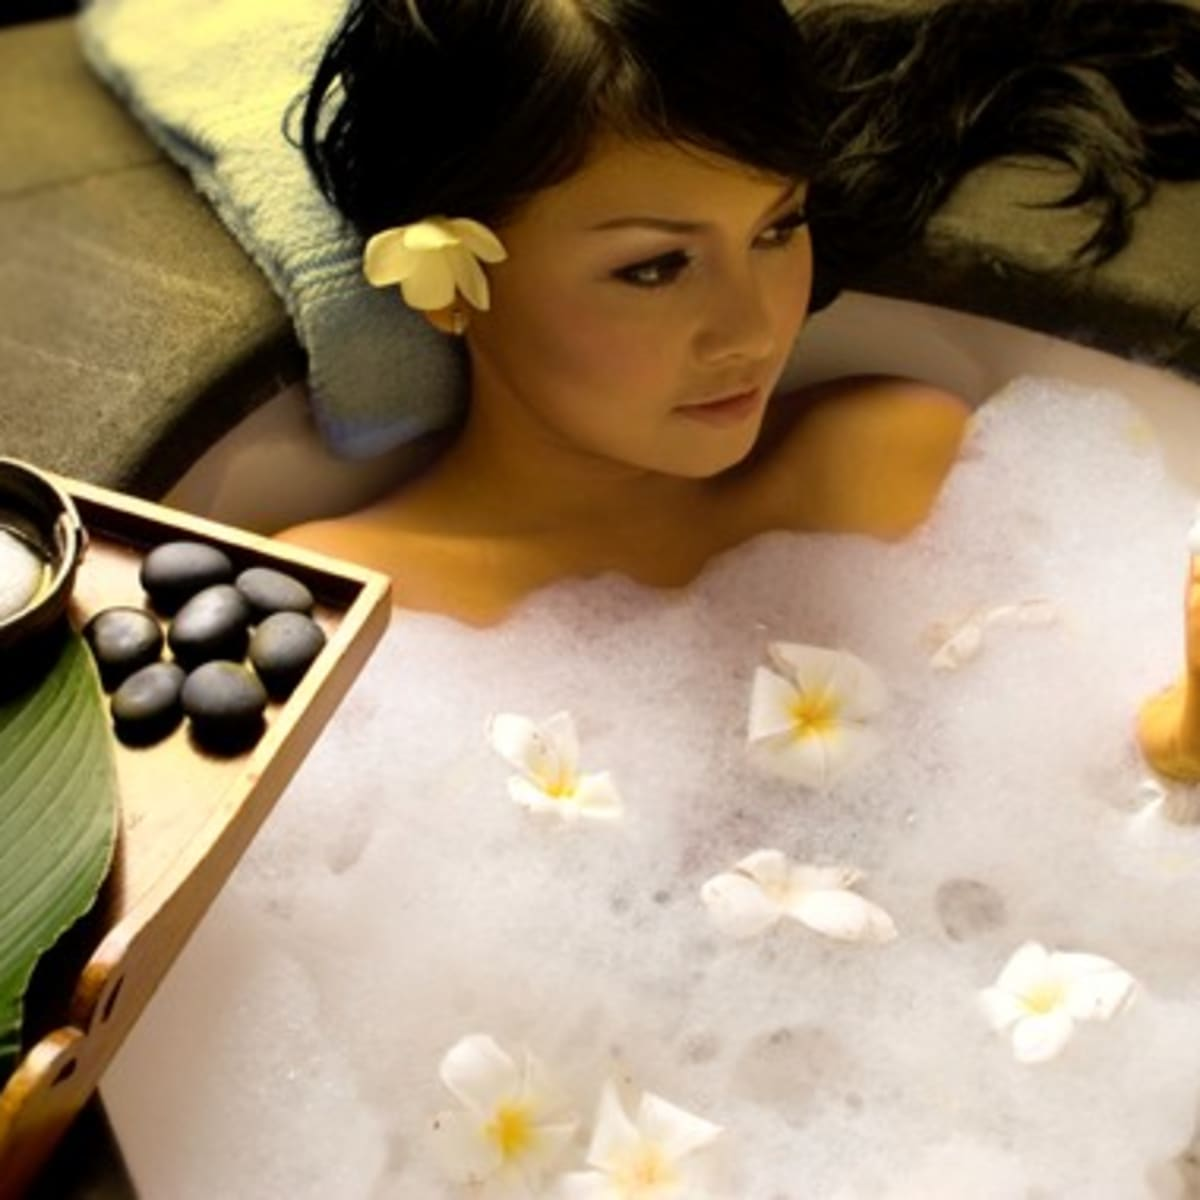 How to get beautiful skin? How to make your skin glow with bathing